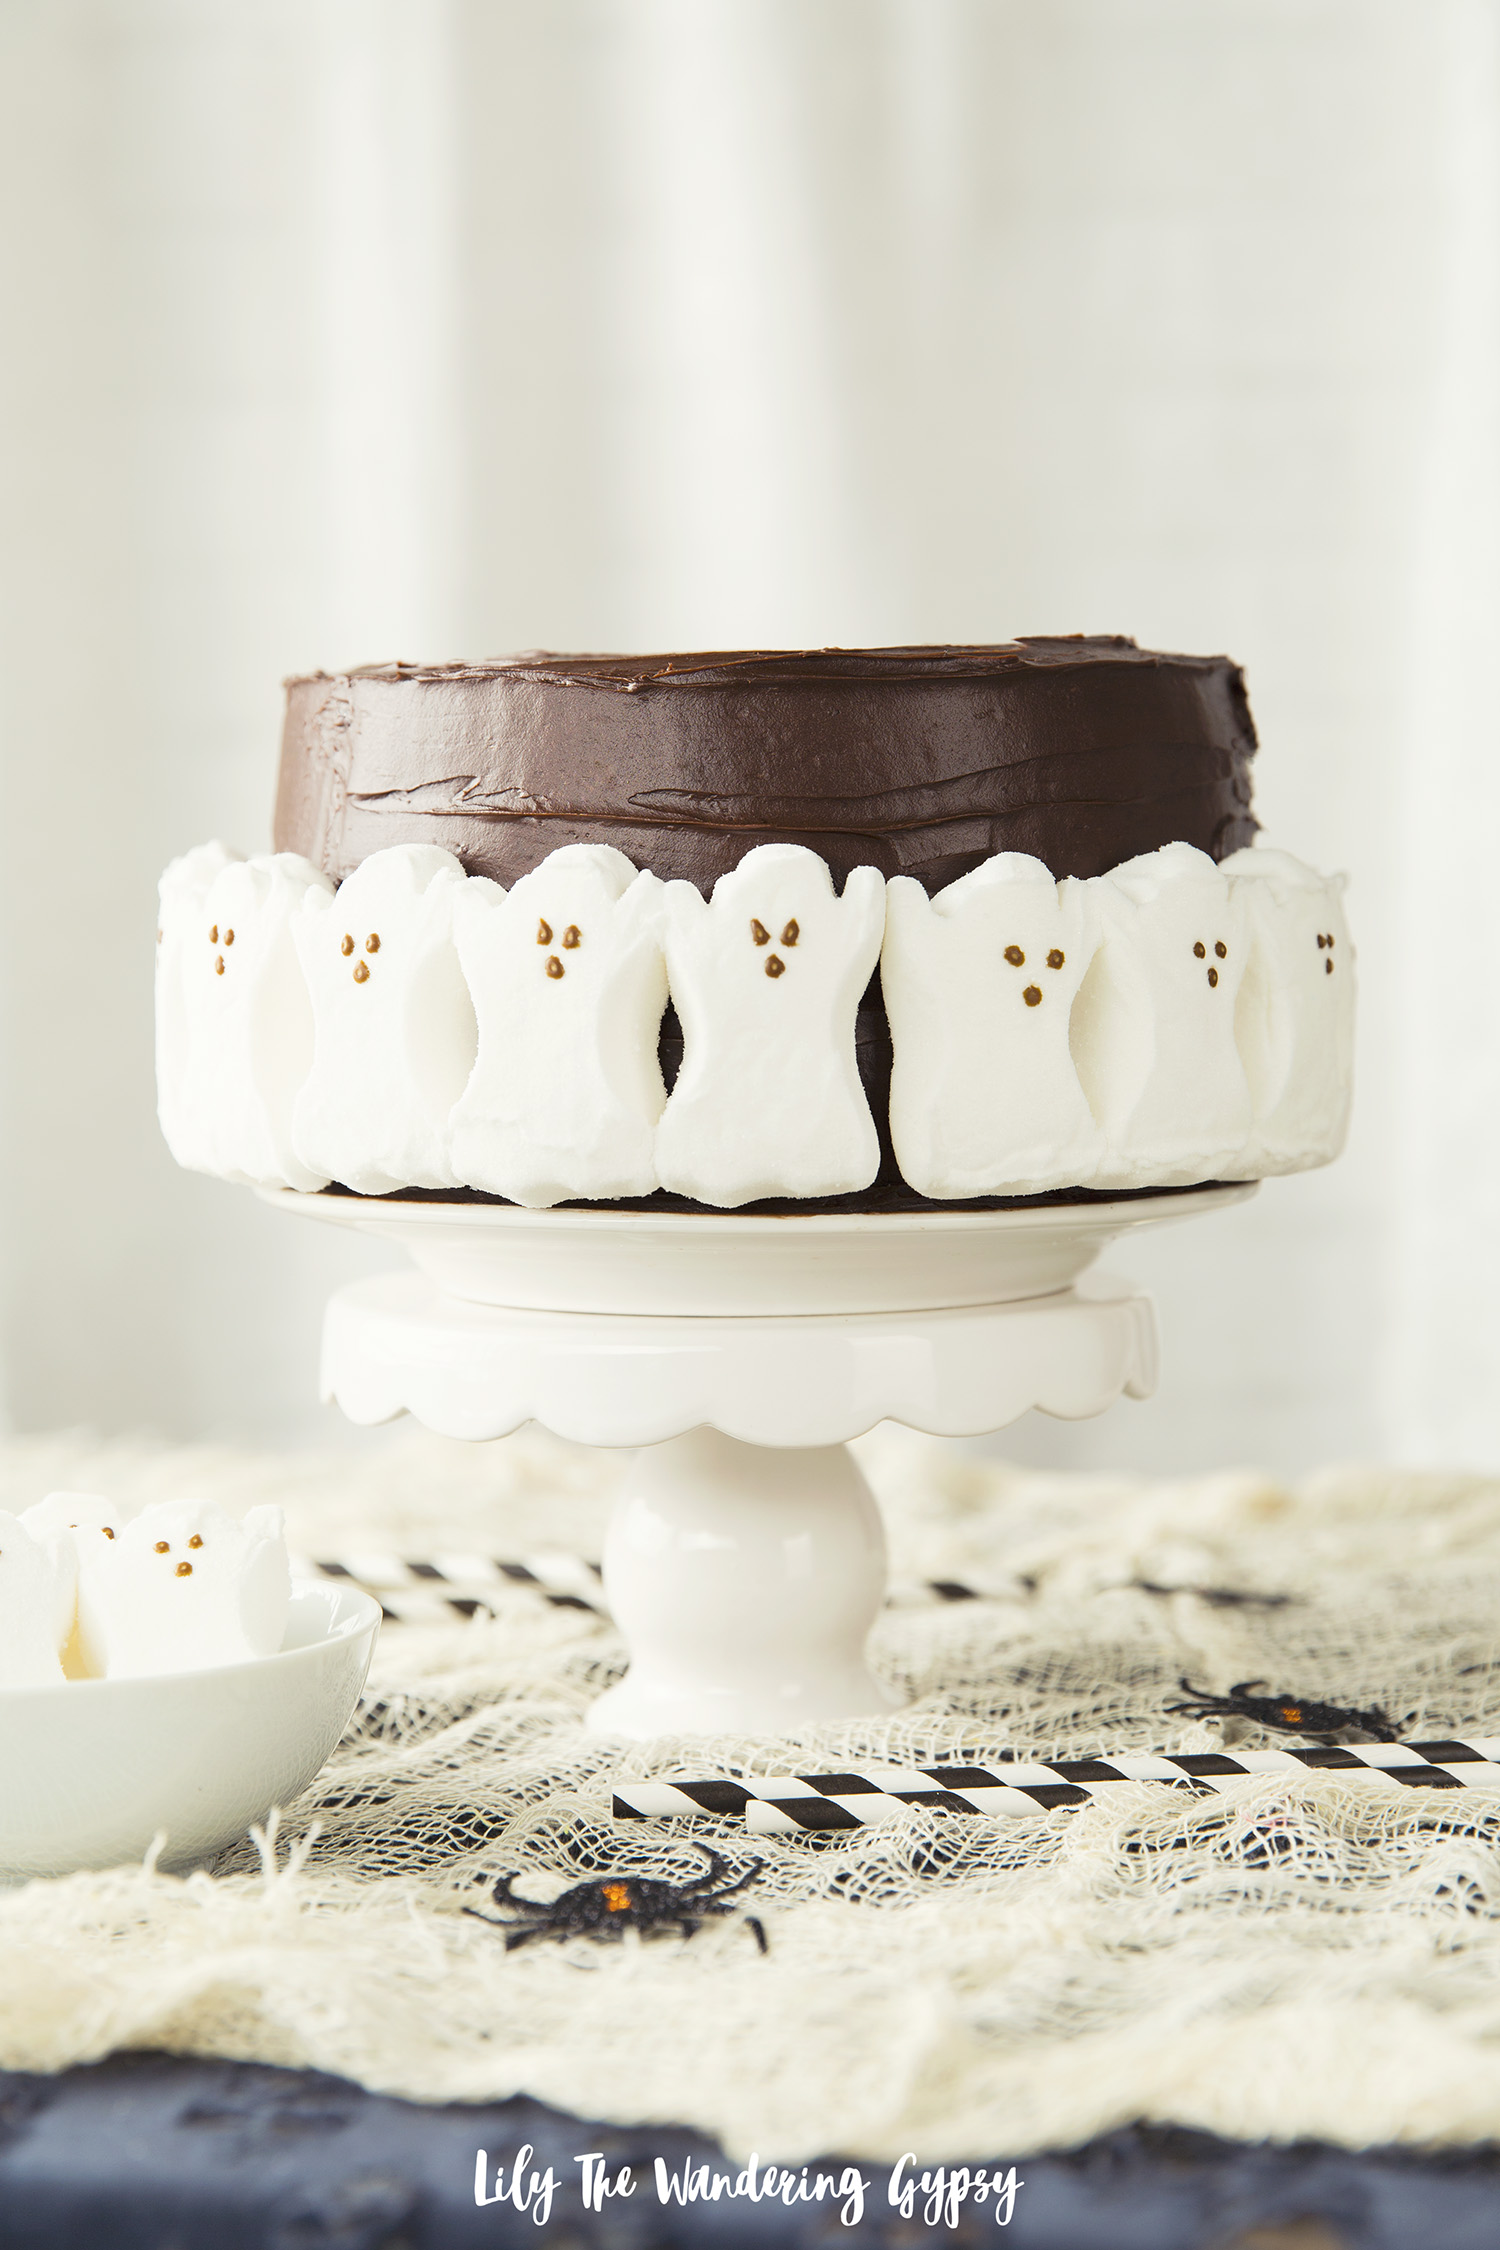 How To Make A Simple Yet Spooky No Bake Halloween Ghost Cake